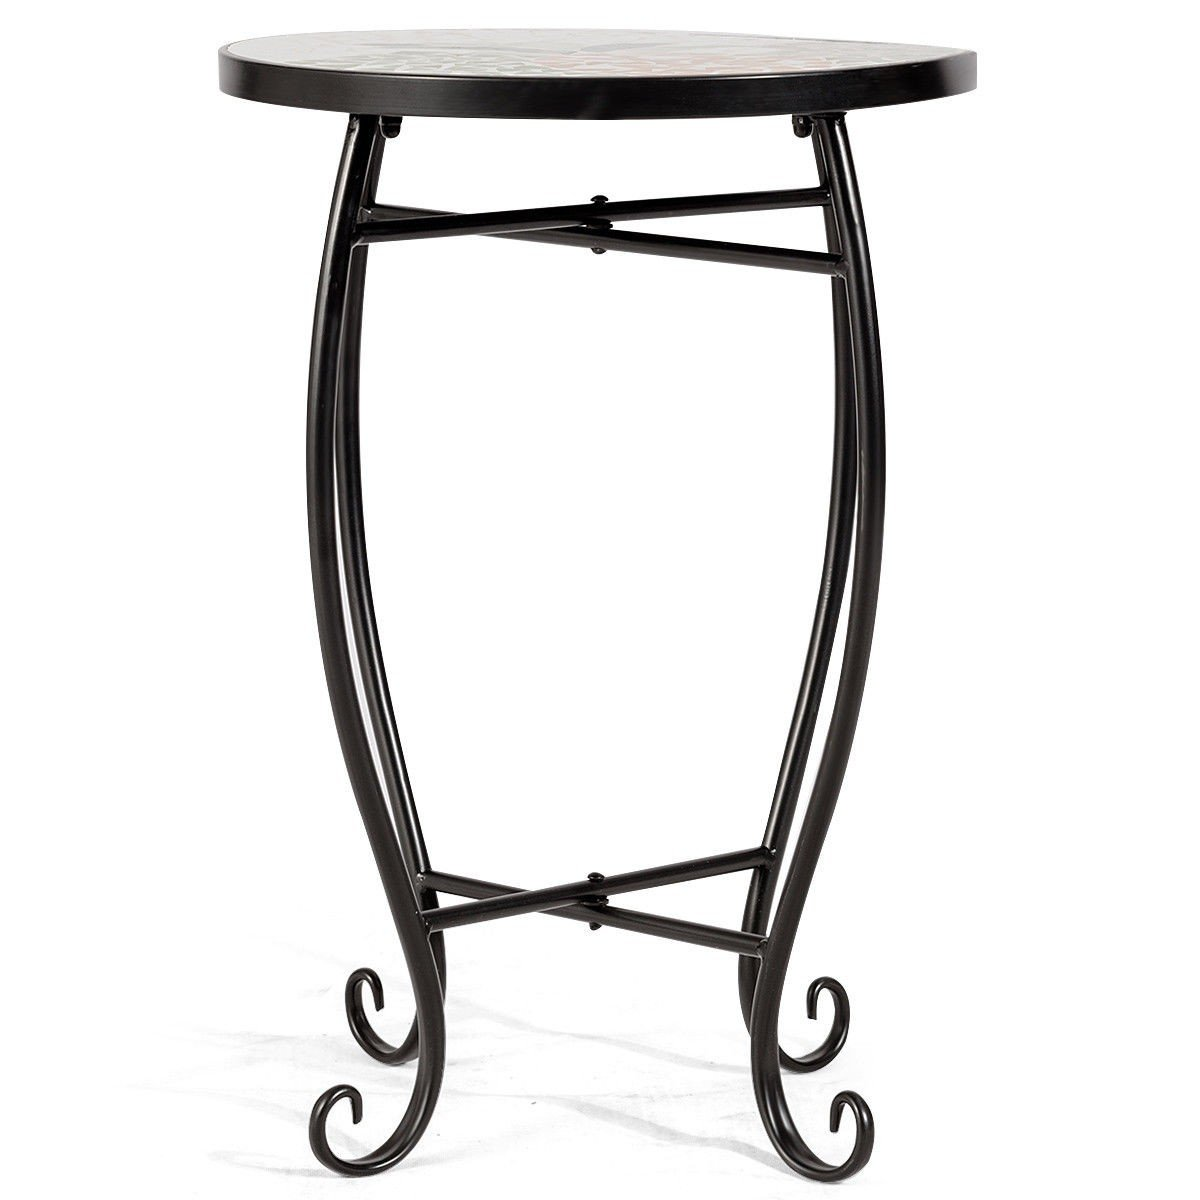 Custpromo Mosaic Accent Table Metal Round Side Table Plant Stand with Cobalt Glass Top Indoor Outdoor Garden Patio Table (Sweet Pineapple)